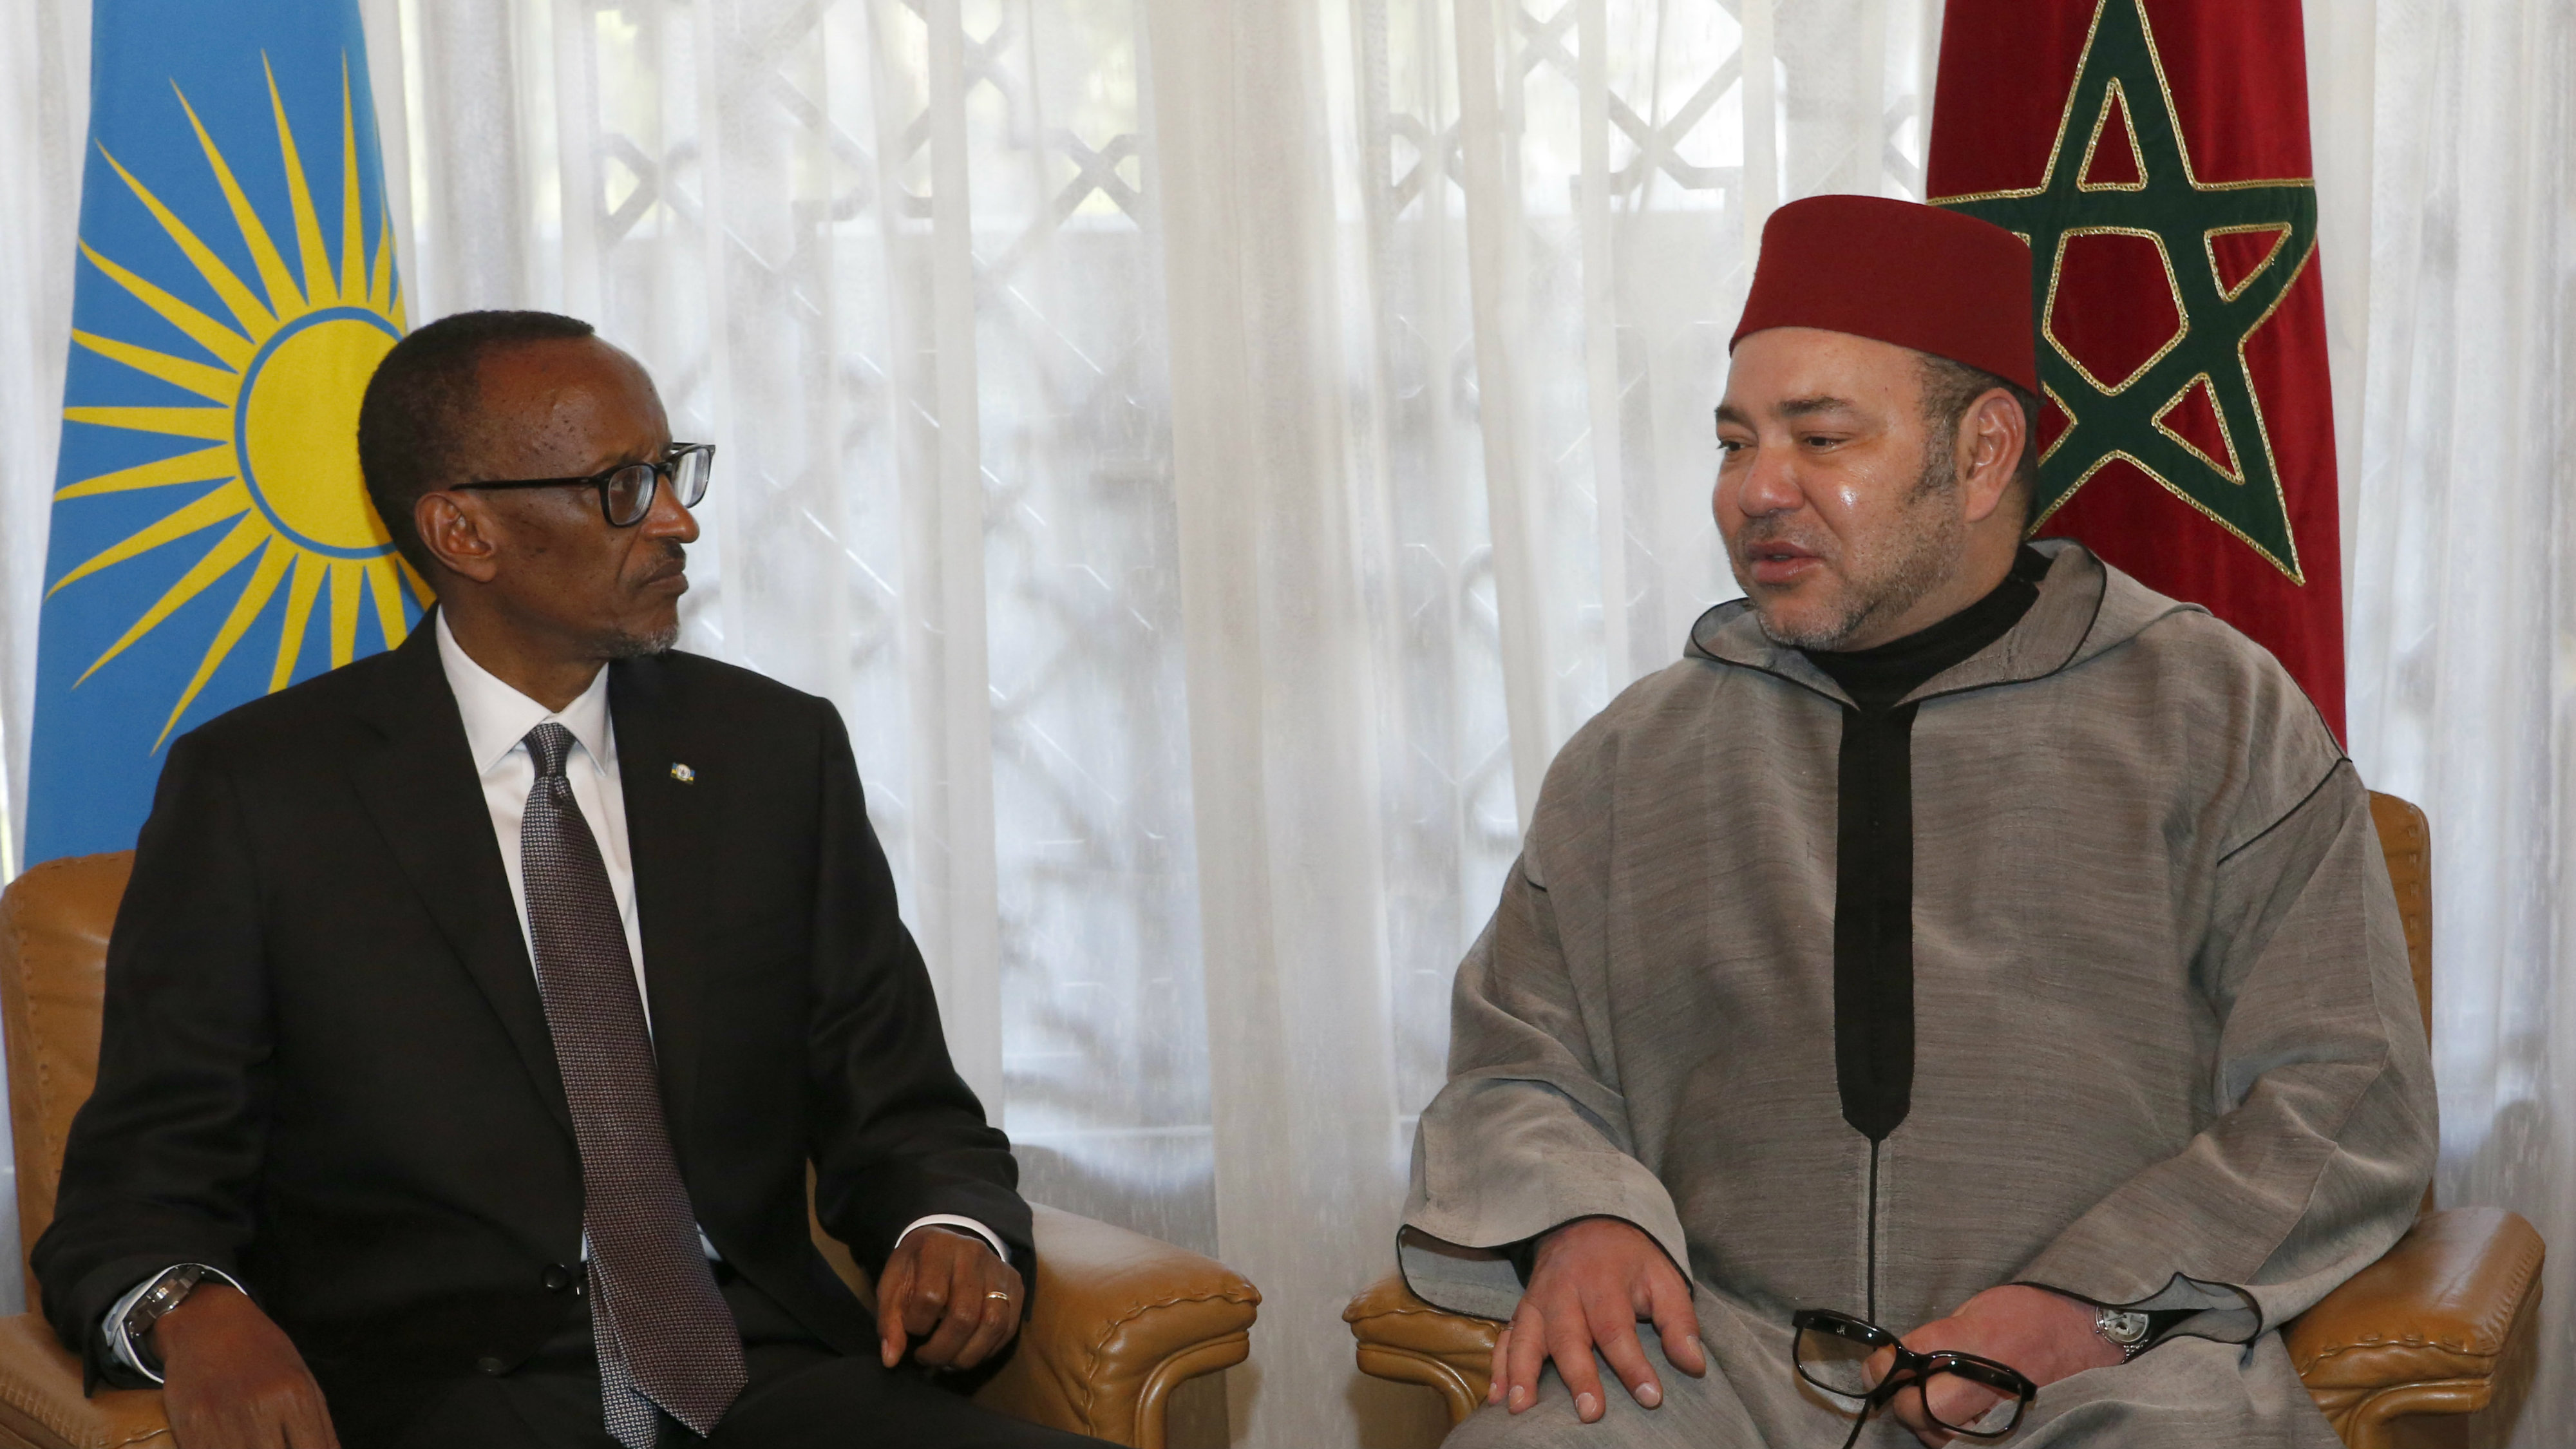 Rwanda's President Paul Kagame, left and Morocco's King Mohammed VI, right, pose for photographers prior to their talks at the royal palace in Casablanca, Morocco, Monday June 20, 2016.